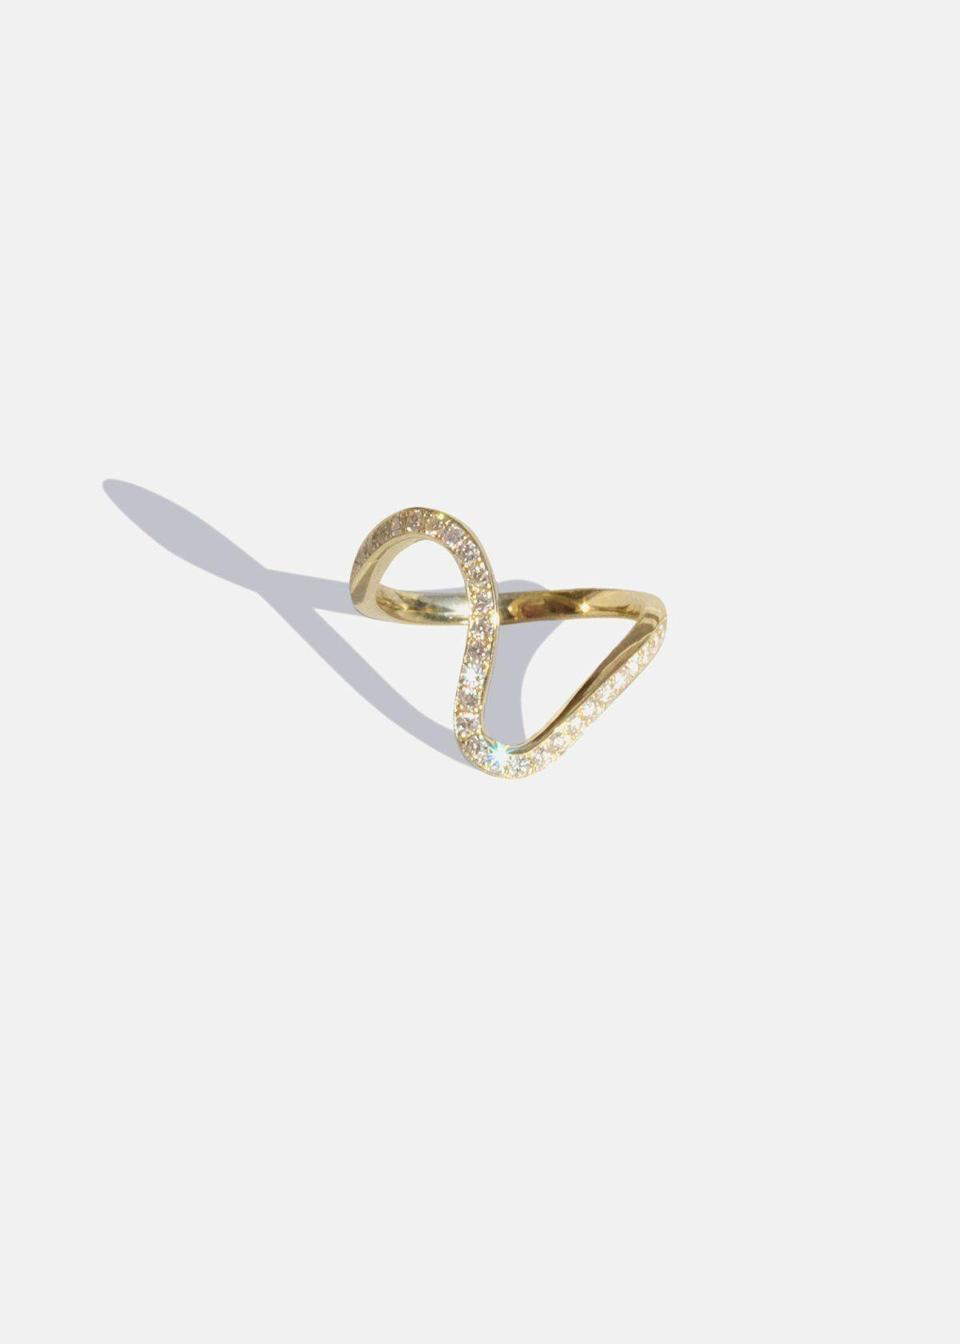 """<p><strong>Kat Kim </strong></p><p>katkimfinejewelry.com</p><p><strong>$4200.00</strong></p><p><a href=""""https://katkimfinejewelry.com/collections/rings/products/trace_ring"""" rel=""""nofollow noopener"""" target=""""_blank"""" data-ylk=""""slk:Shop Now"""" class=""""link rapid-noclick-resp"""">Shop Now</a></p><p>KATKIM is a blend of design, quality and sustainability that is fused in every piece. Sustainability is a crucial guideline for the design and development of KATKIM pieces, which are created with respect for the communities and environment that surrounds us. All of their diamonds are conflict free and they use recycled gold whenever possible. KATKIM donates monthly to Ethical Metalsmiths and annually a portion of proceeds to Ocean Conservancy. </p>"""